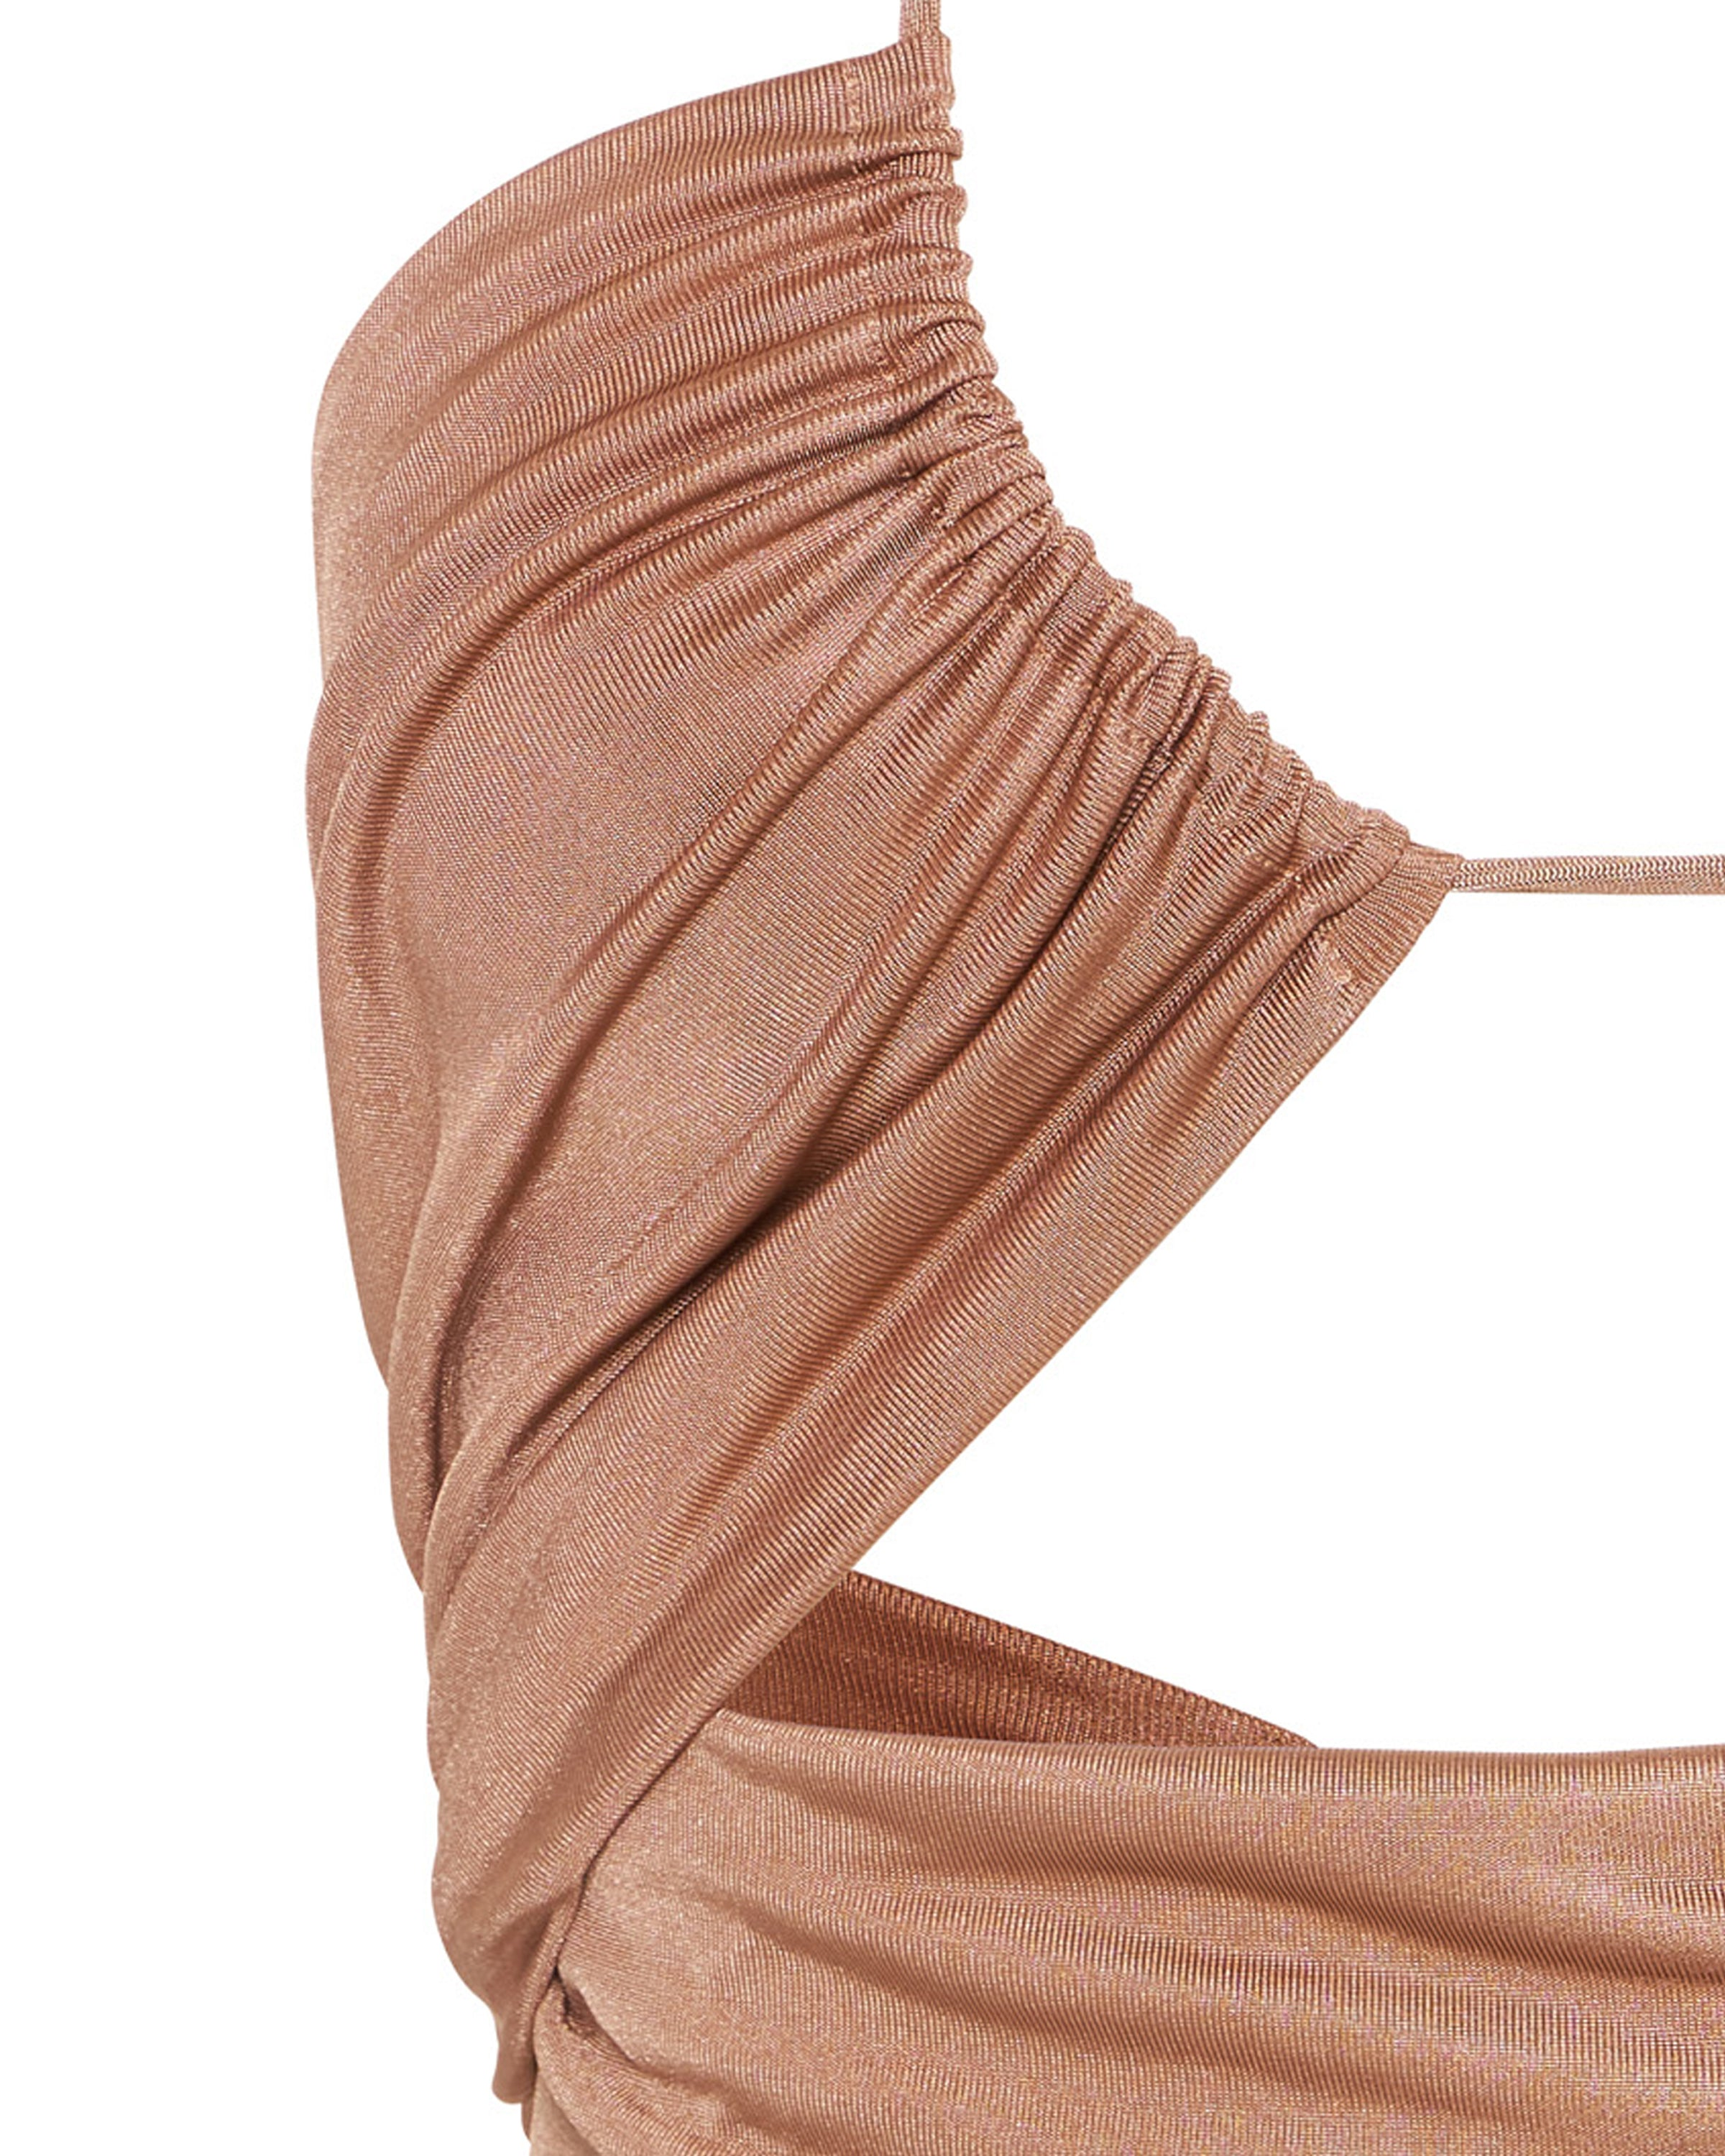 LEAD ON HALTER MIDI | BLUSHING